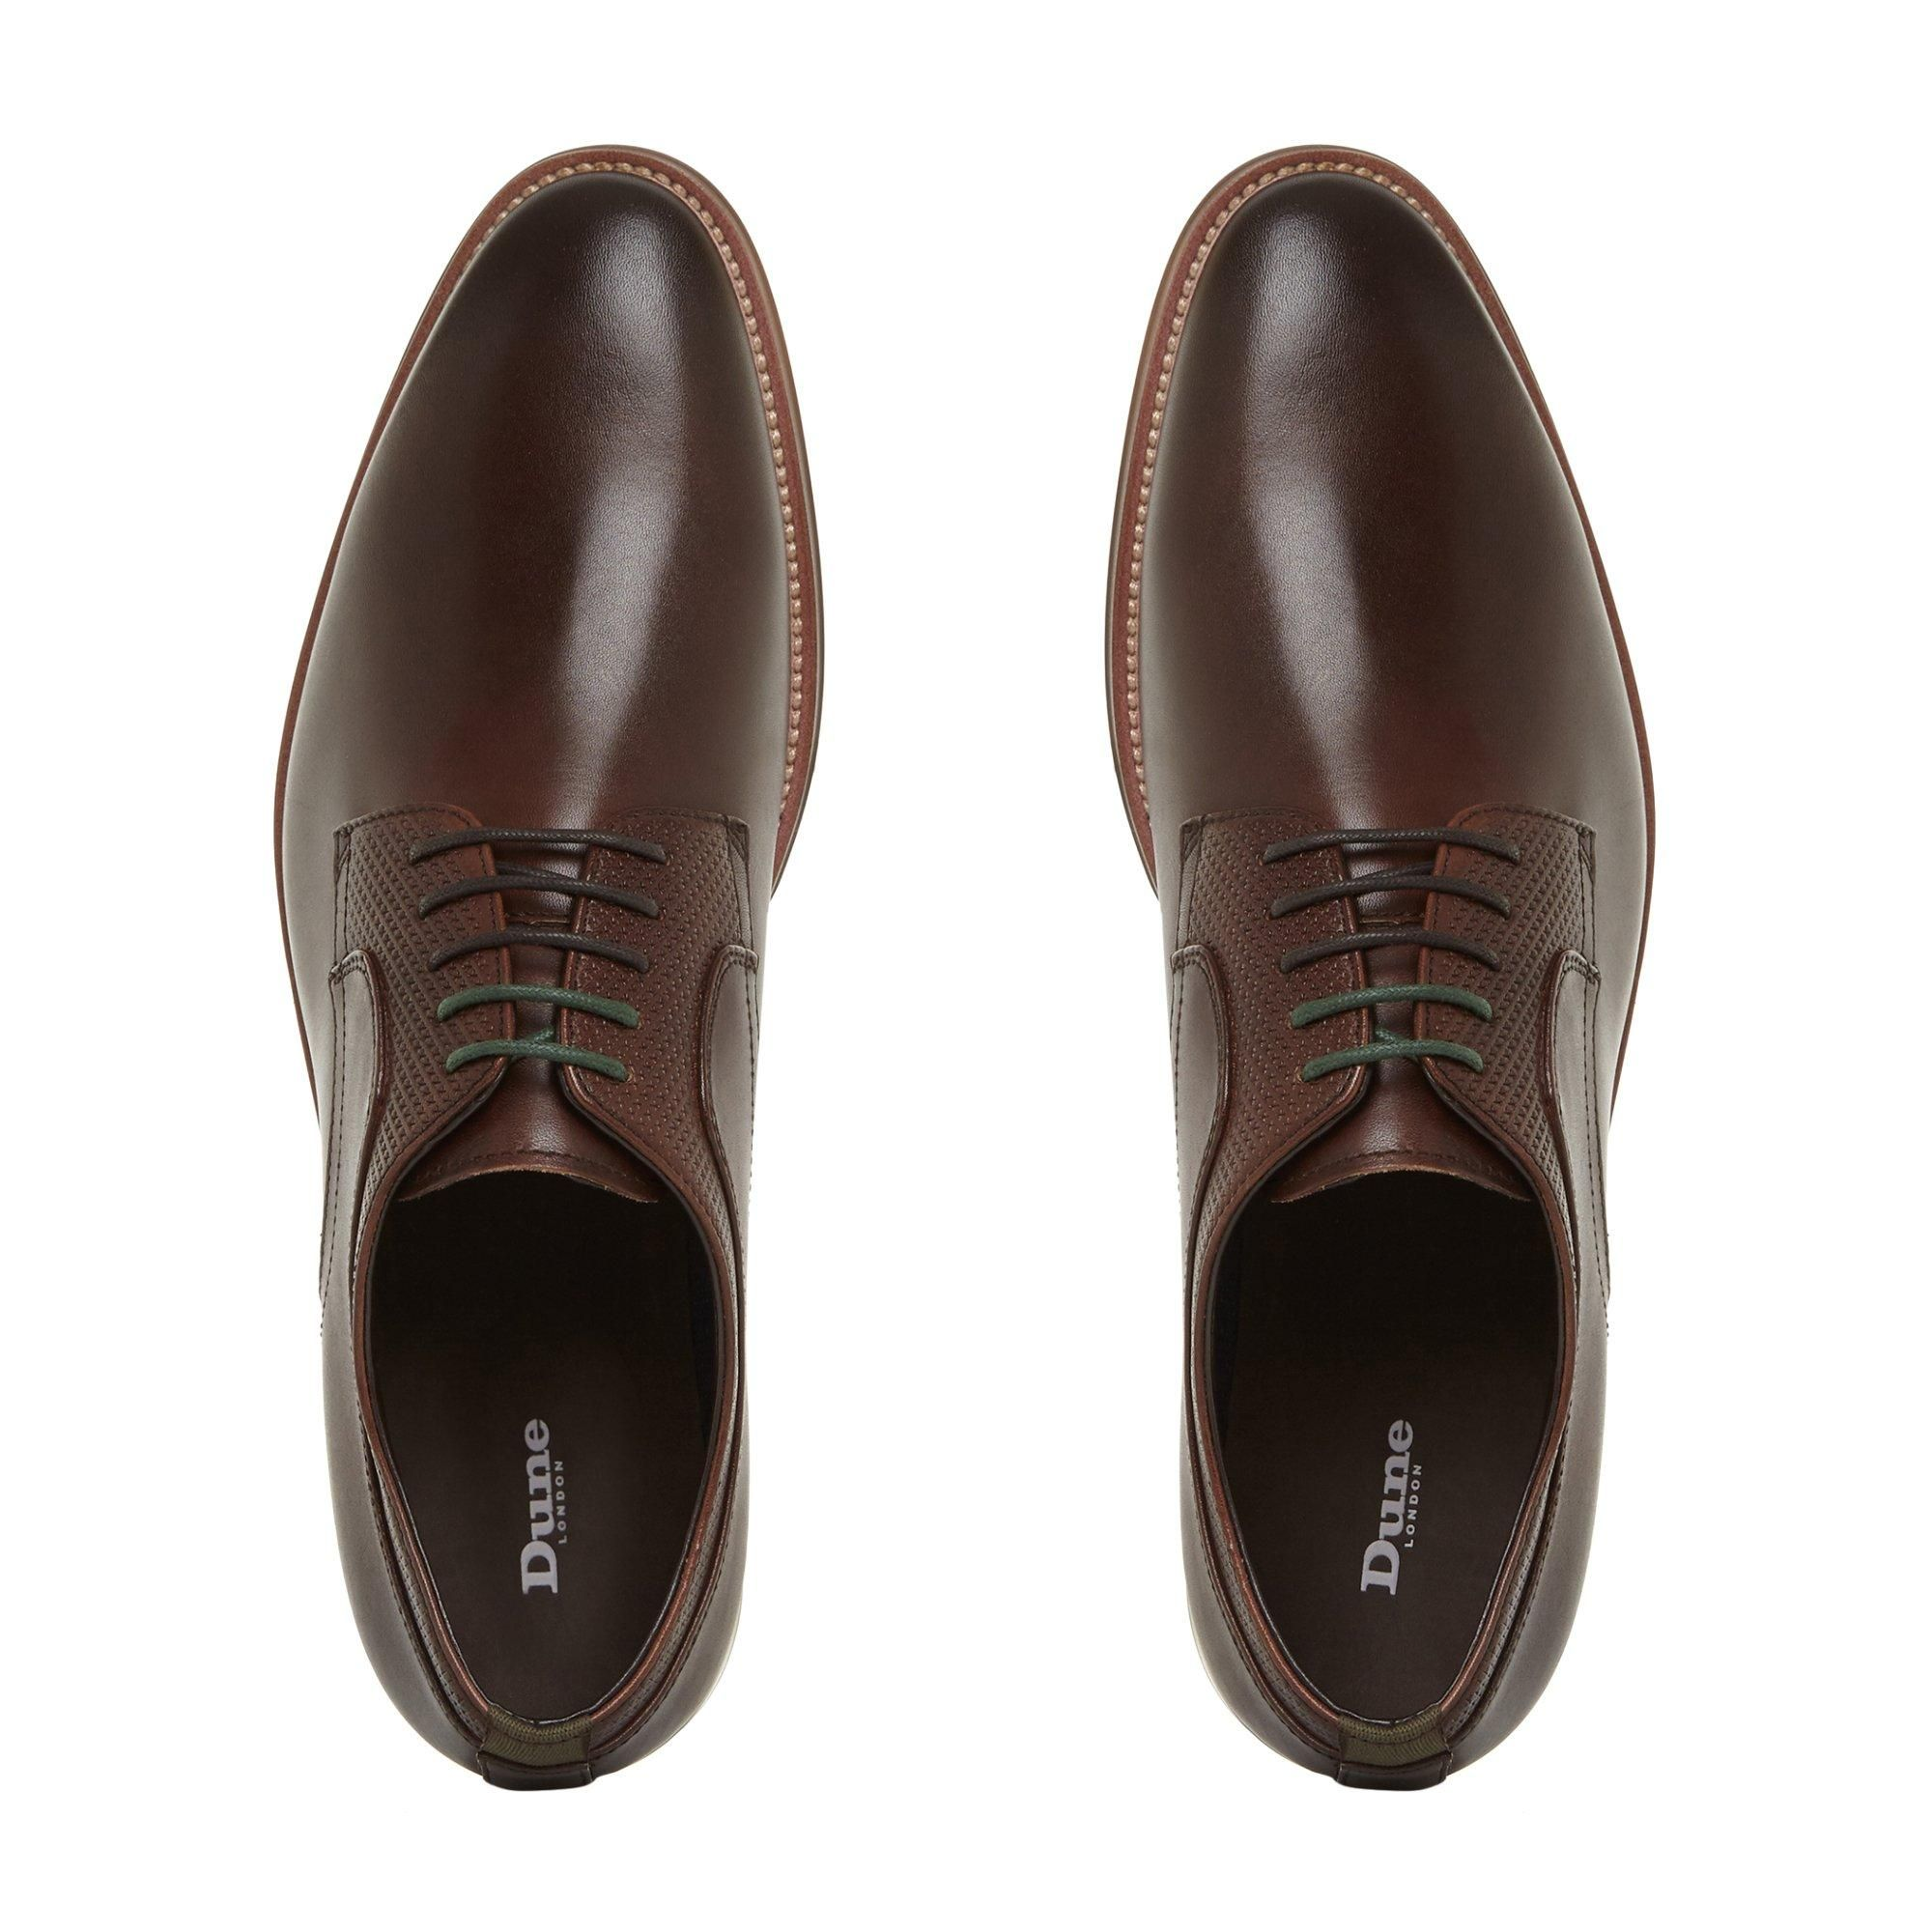 Dune Mens STAFFORD Perforated Detail Lace Up Shoes